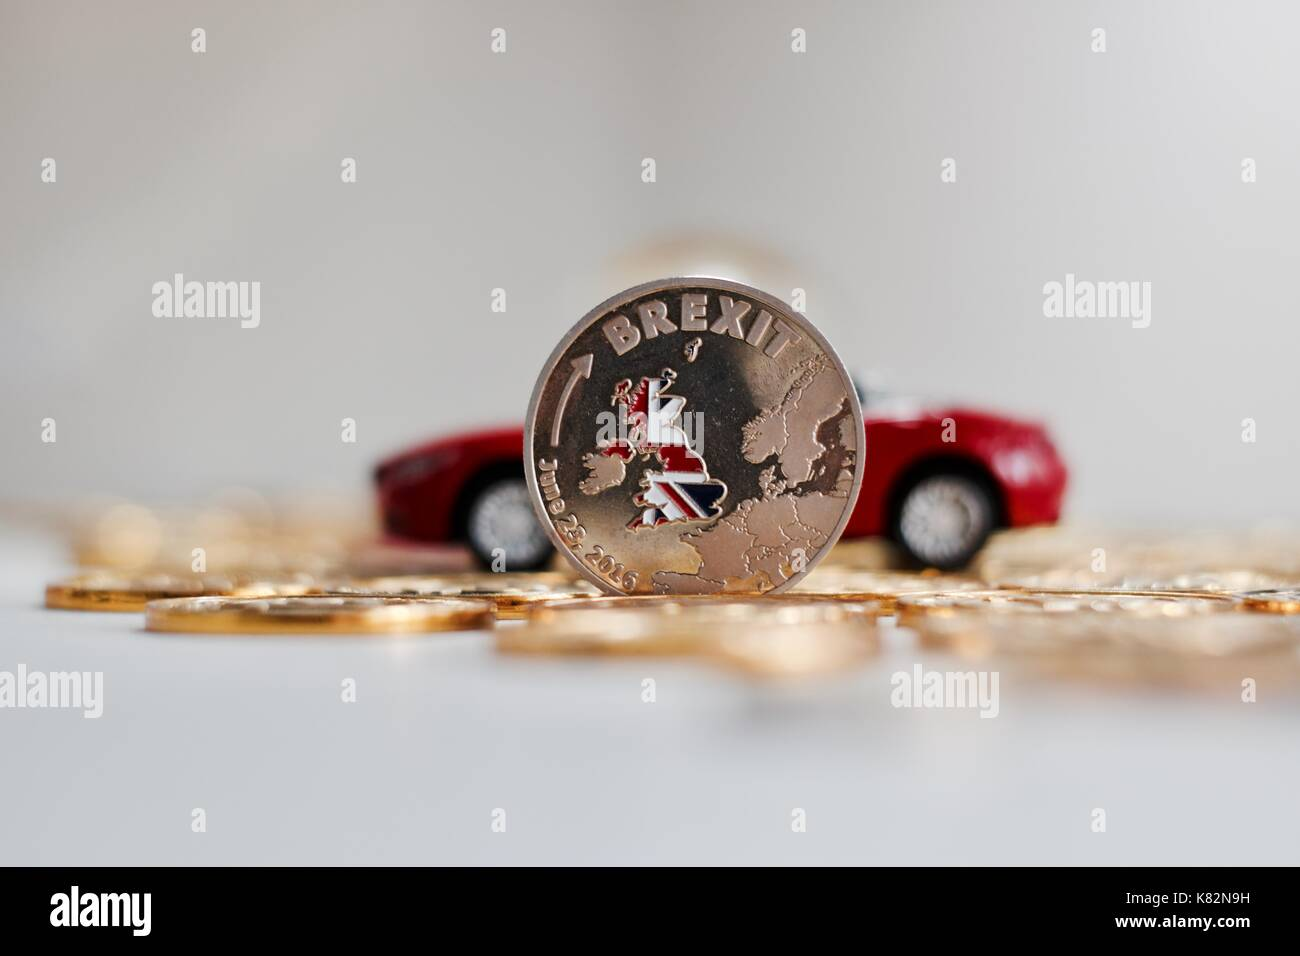 Europe leaving. Physical brexit coin near red luxury car. British map flag. Stock Photo